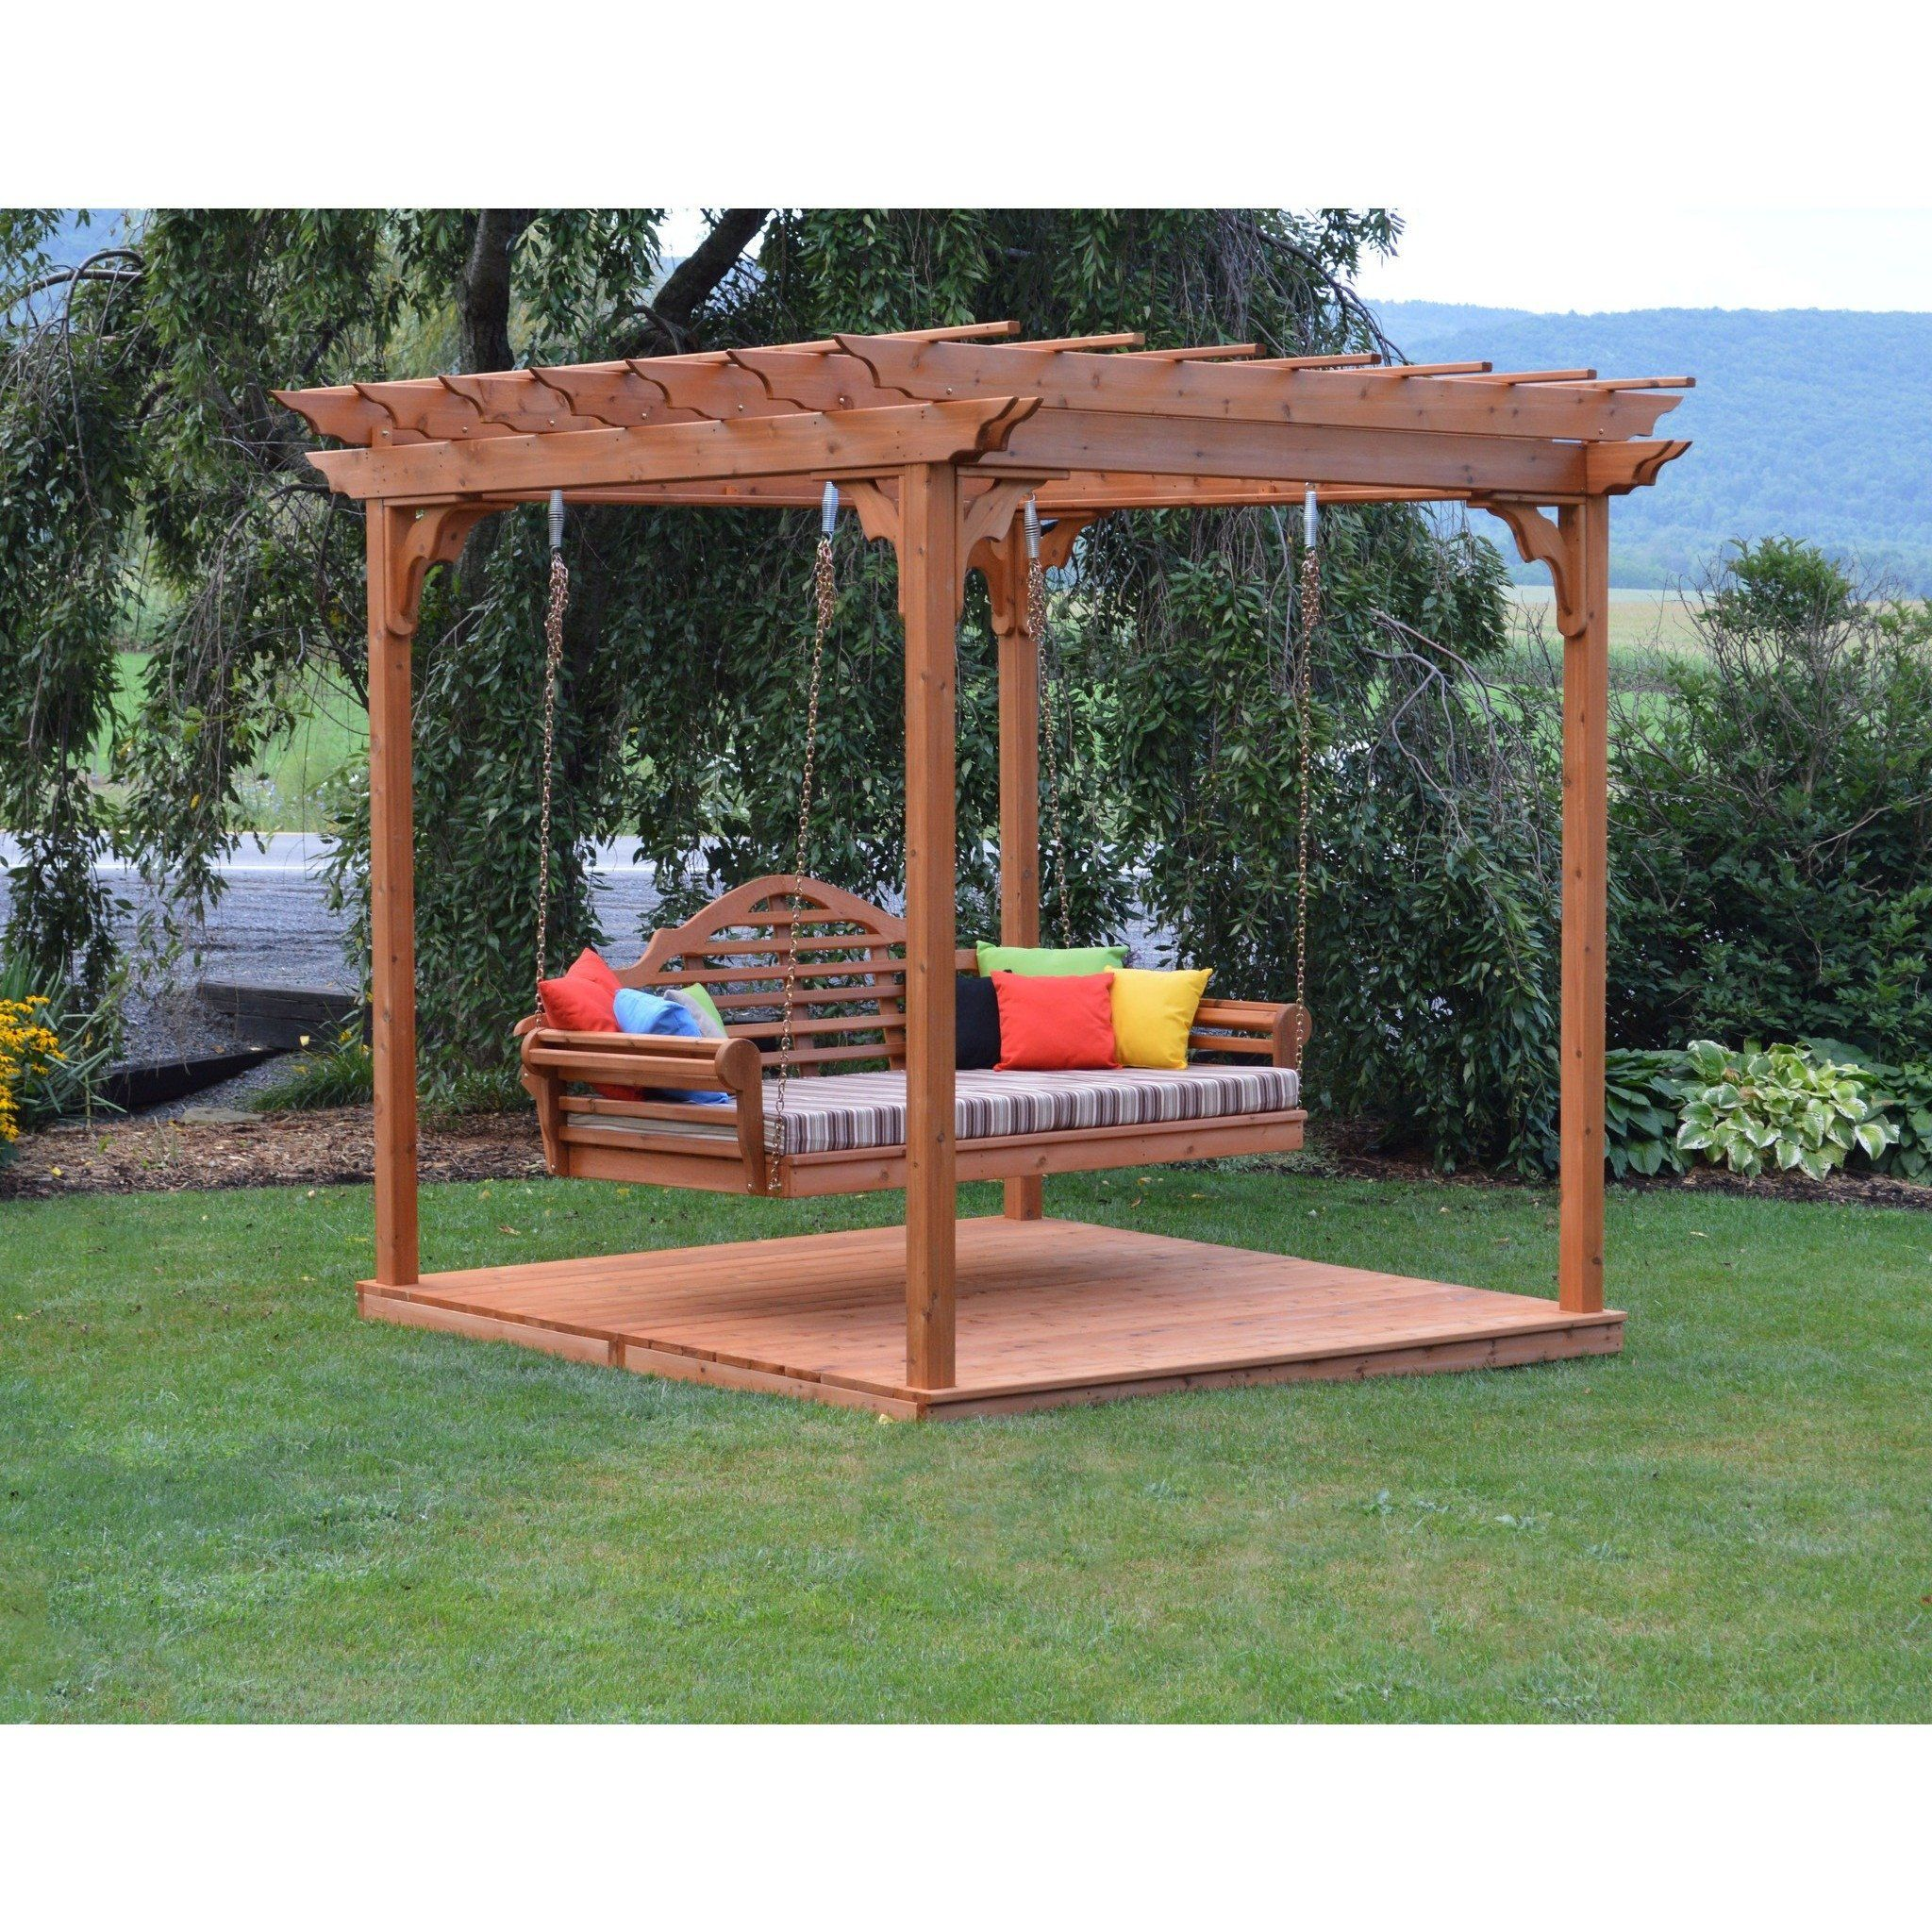 deck walmart porch smartly swings swi along plans swing home stand at ybyrrk stores depot kits cypress with comely canopy dashing regular back then hilarious similiar crs woodworking wooden atg patio la cedar ga